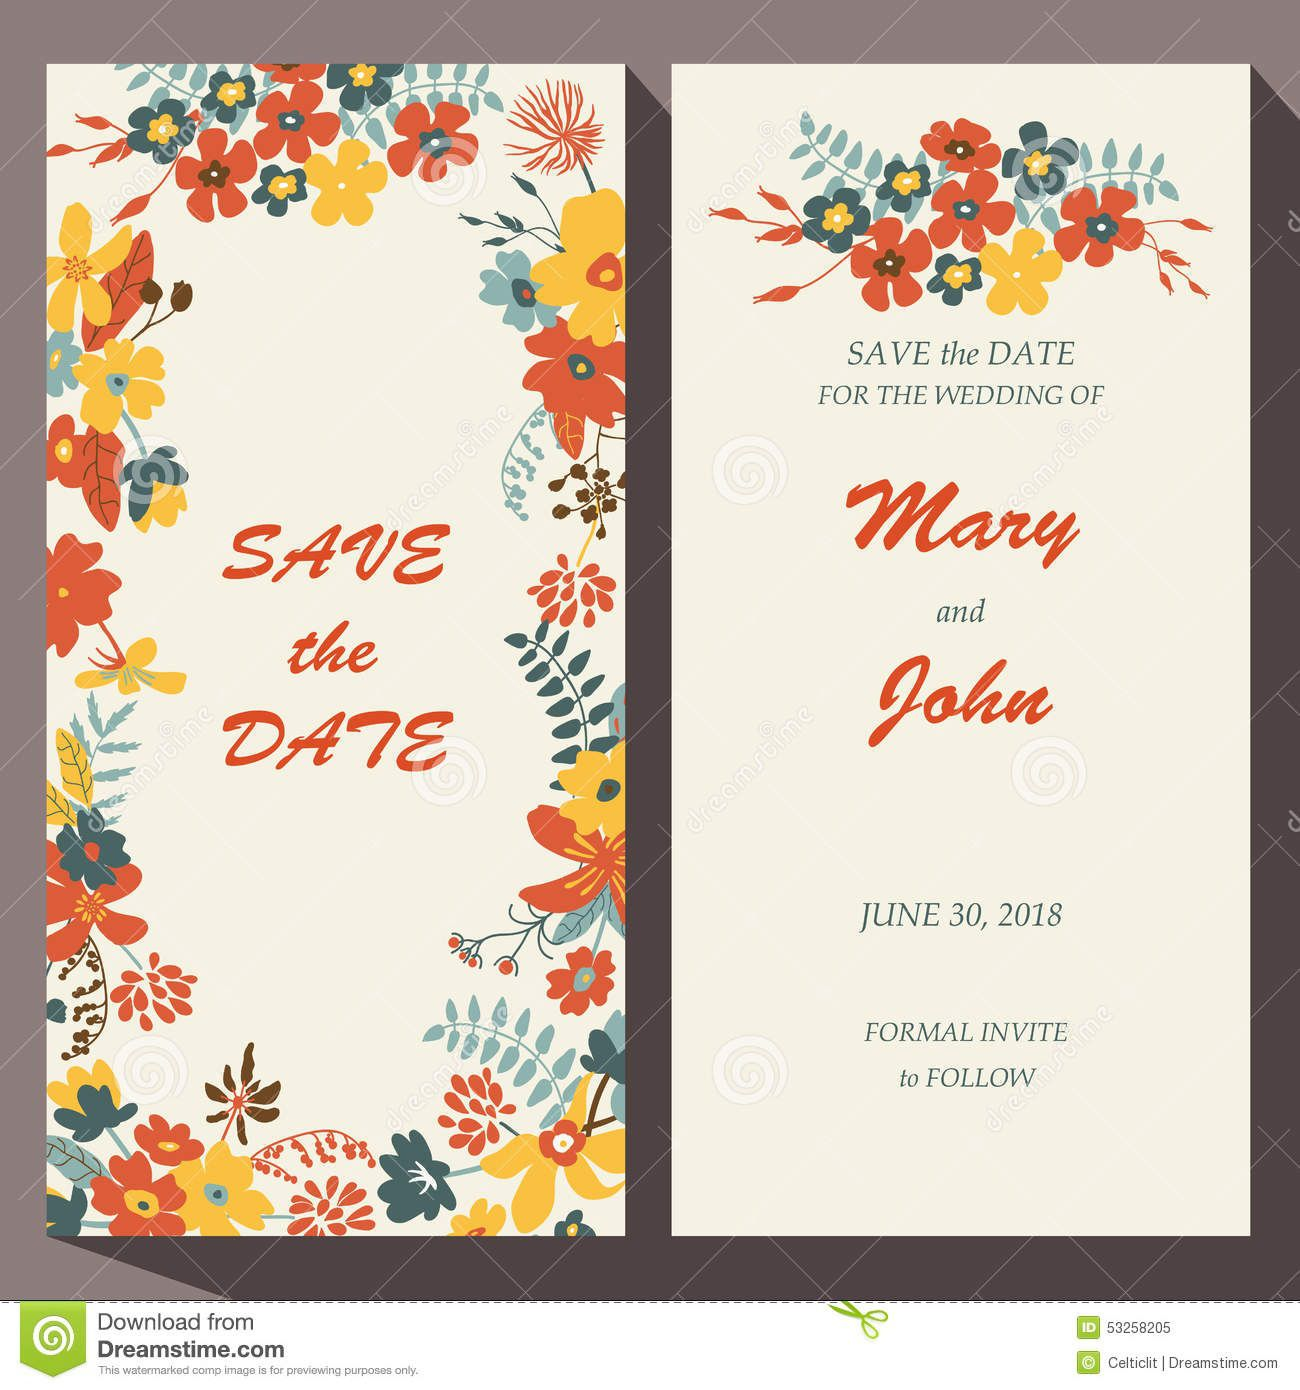 009 Unbelievable Free Save The Date Birthday Postcard Template Concept Full